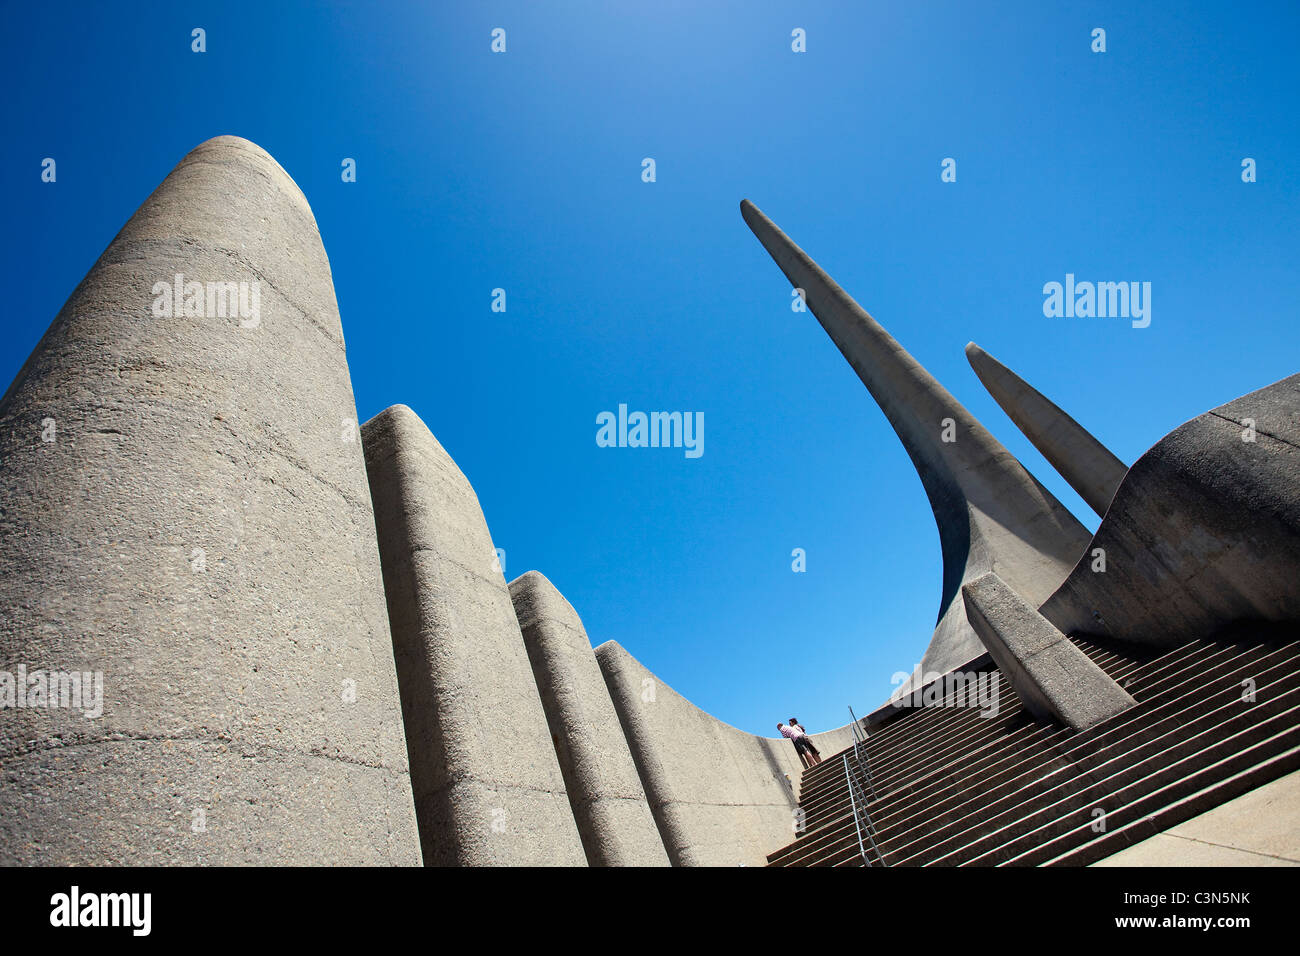 South Africa, Western Cape, Paarl, Afrikaans language monument. - Stock Image